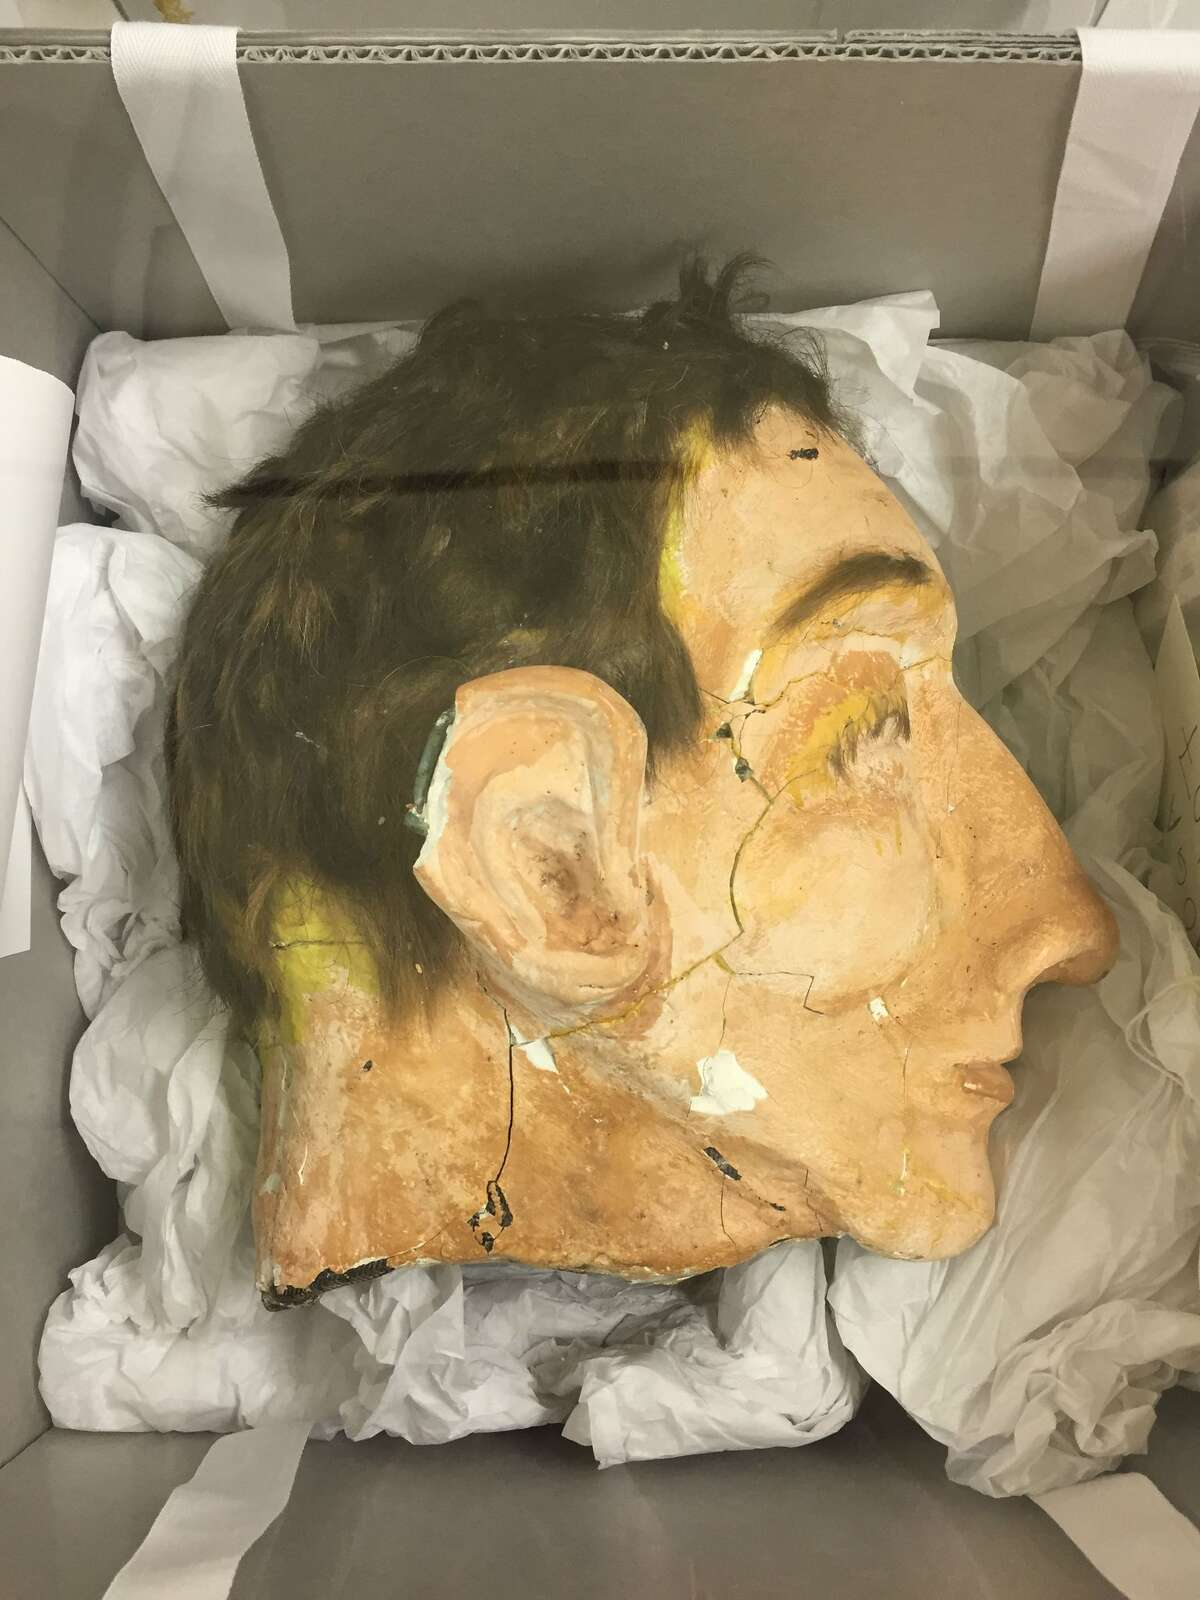 Officials from the FBI and National Park Service are 3-D scanning the decoy heads used during the infamous 1962 Alcatraz escape. Replicas will be used for educational purposes and public display.